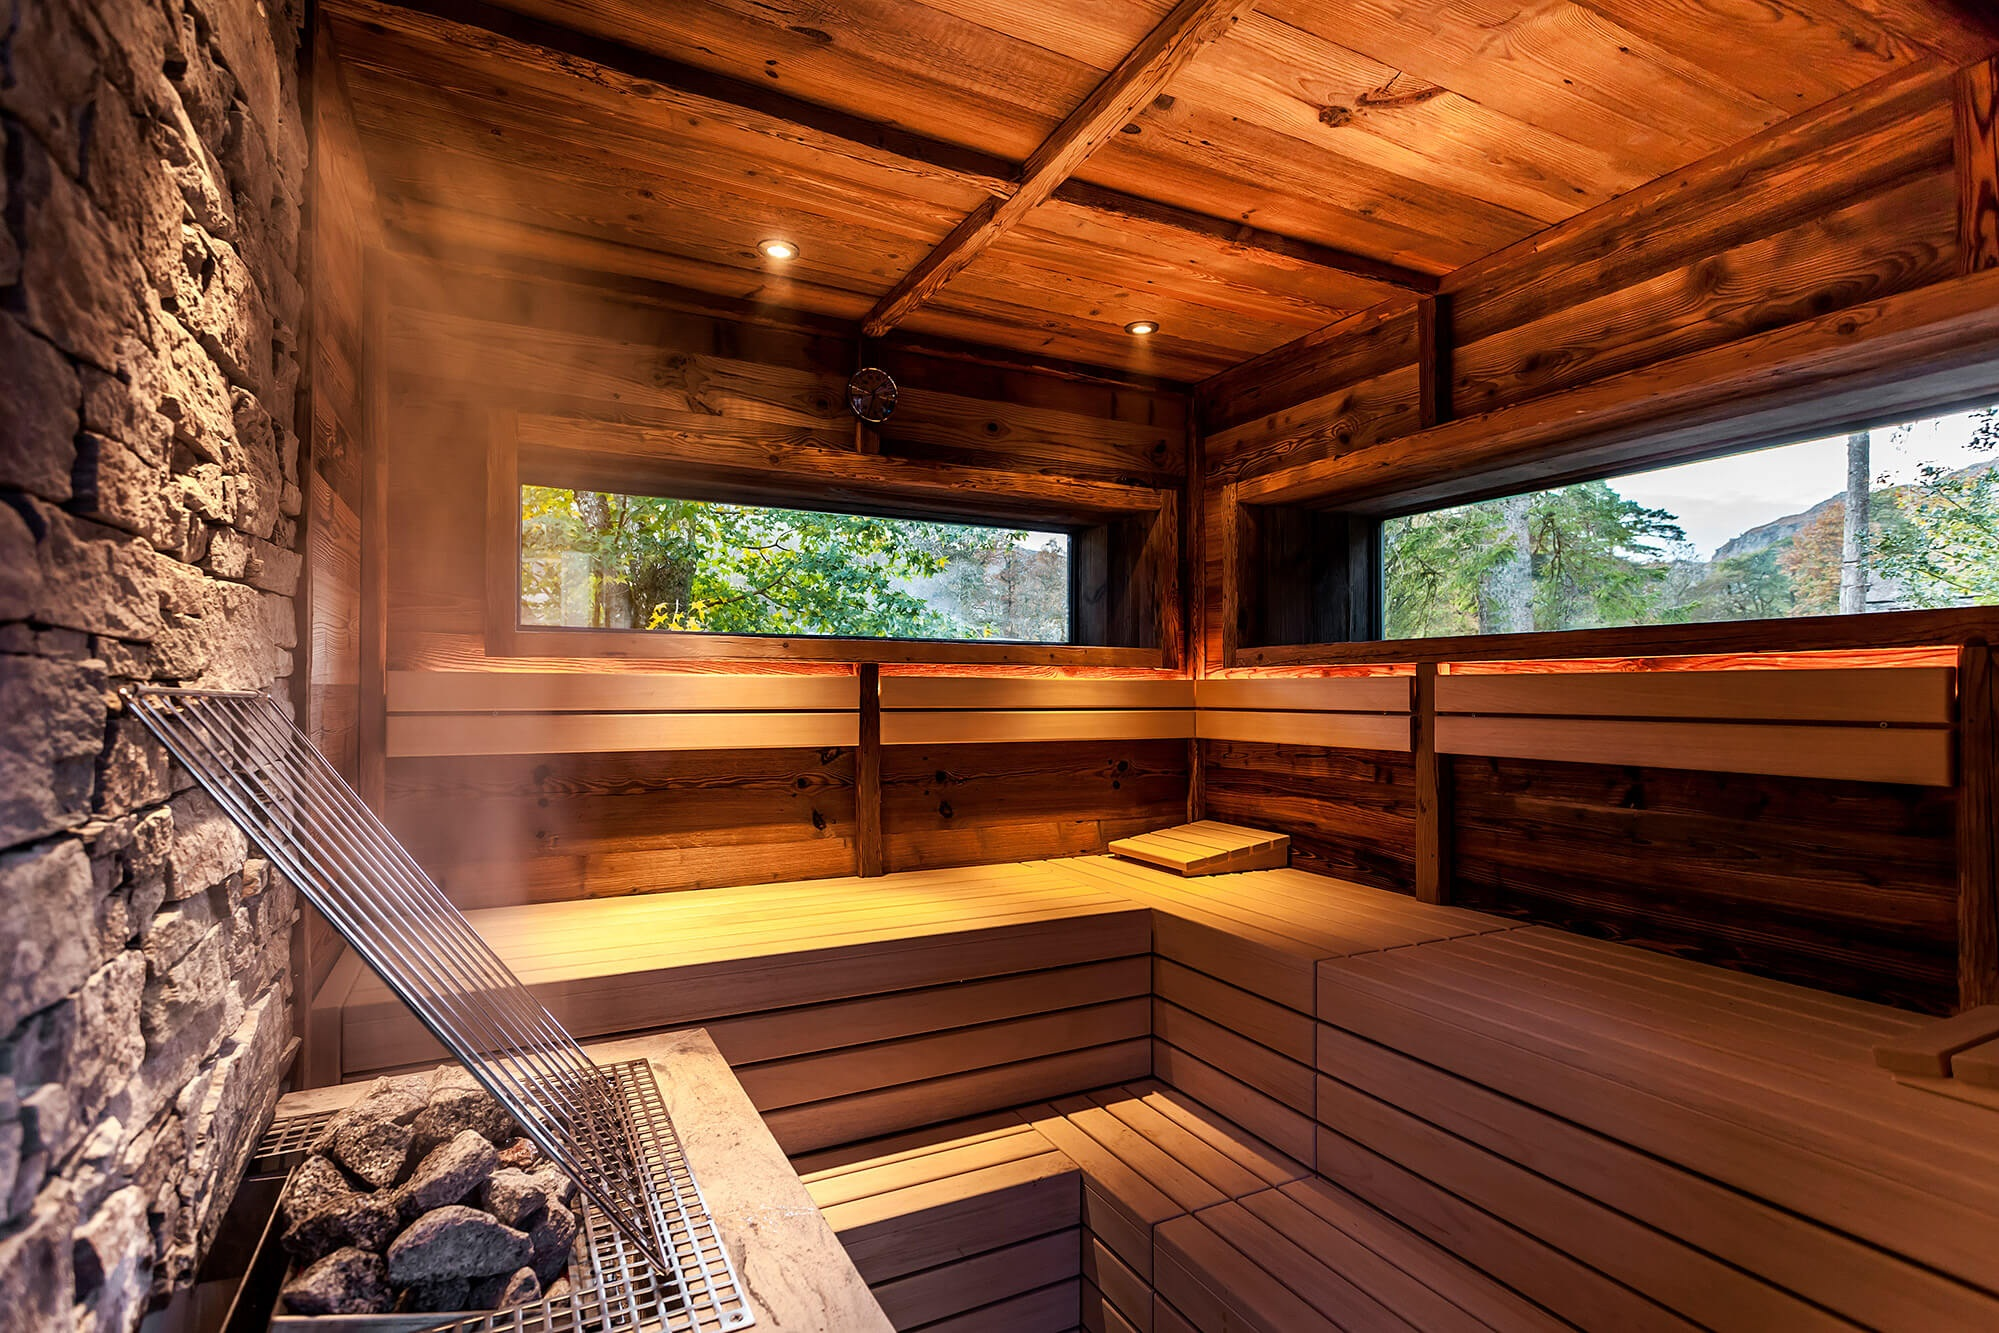 brimstone-spa-finnish-sauna.jpg